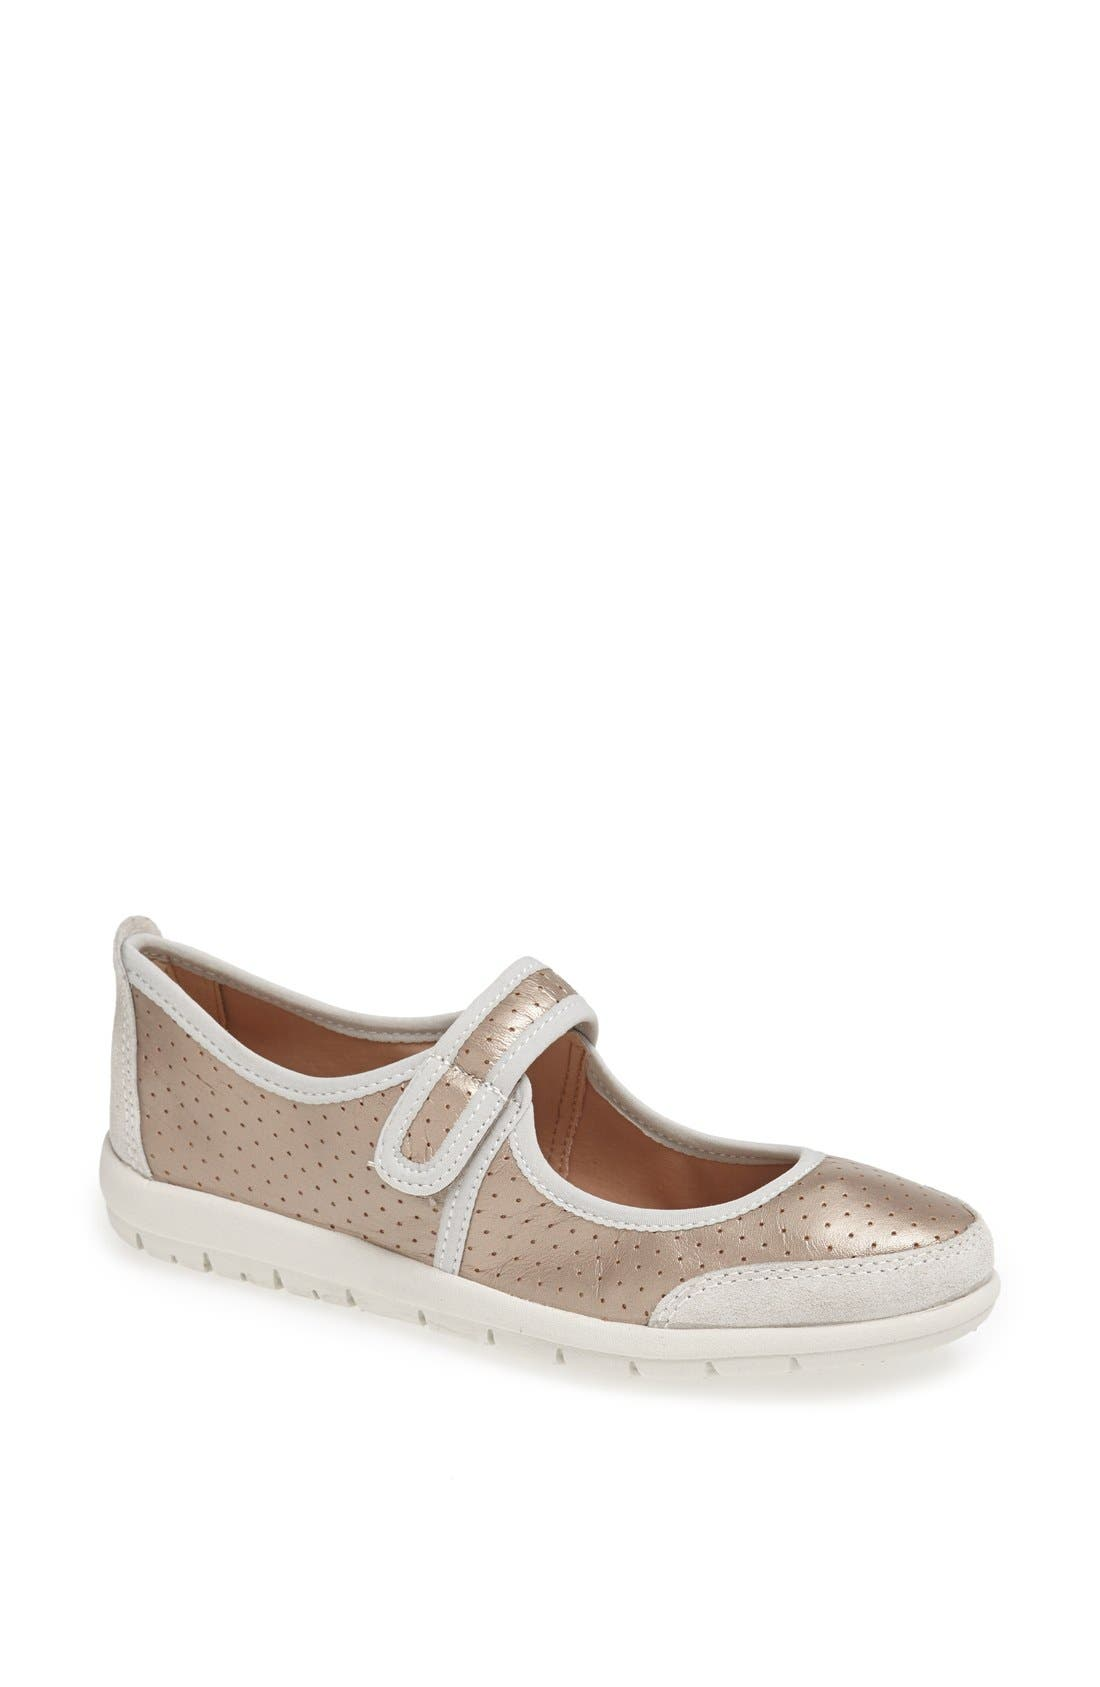 Main Image - Easy Spirit 'e360 - Cesia' Mary Jane Flat (Women)